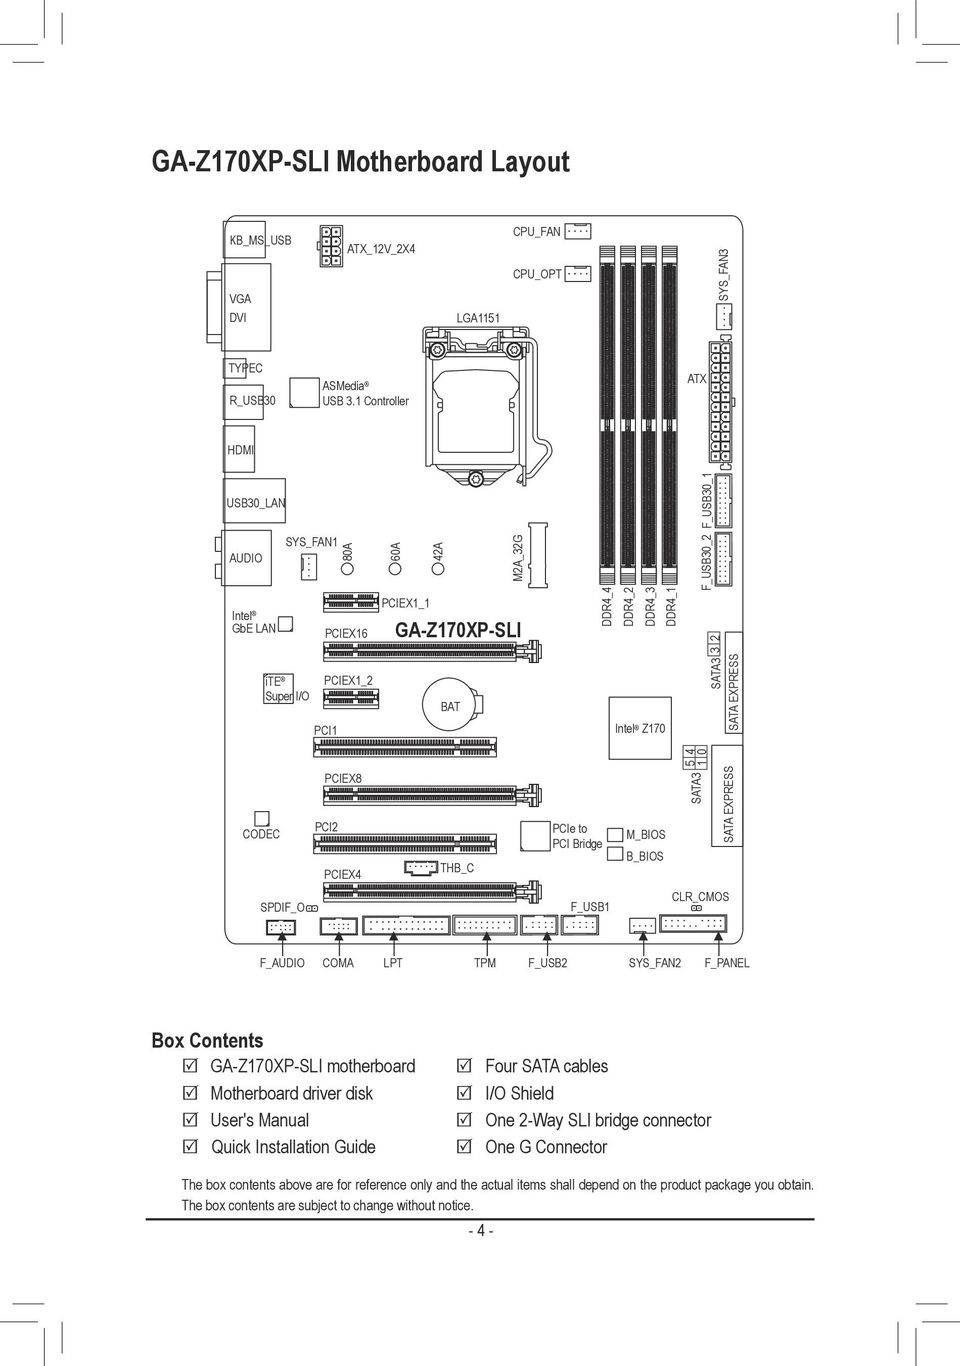 GA-Z170XP-SLI  User's Manual  Rev ME-Z17XPSL-1002R  For more